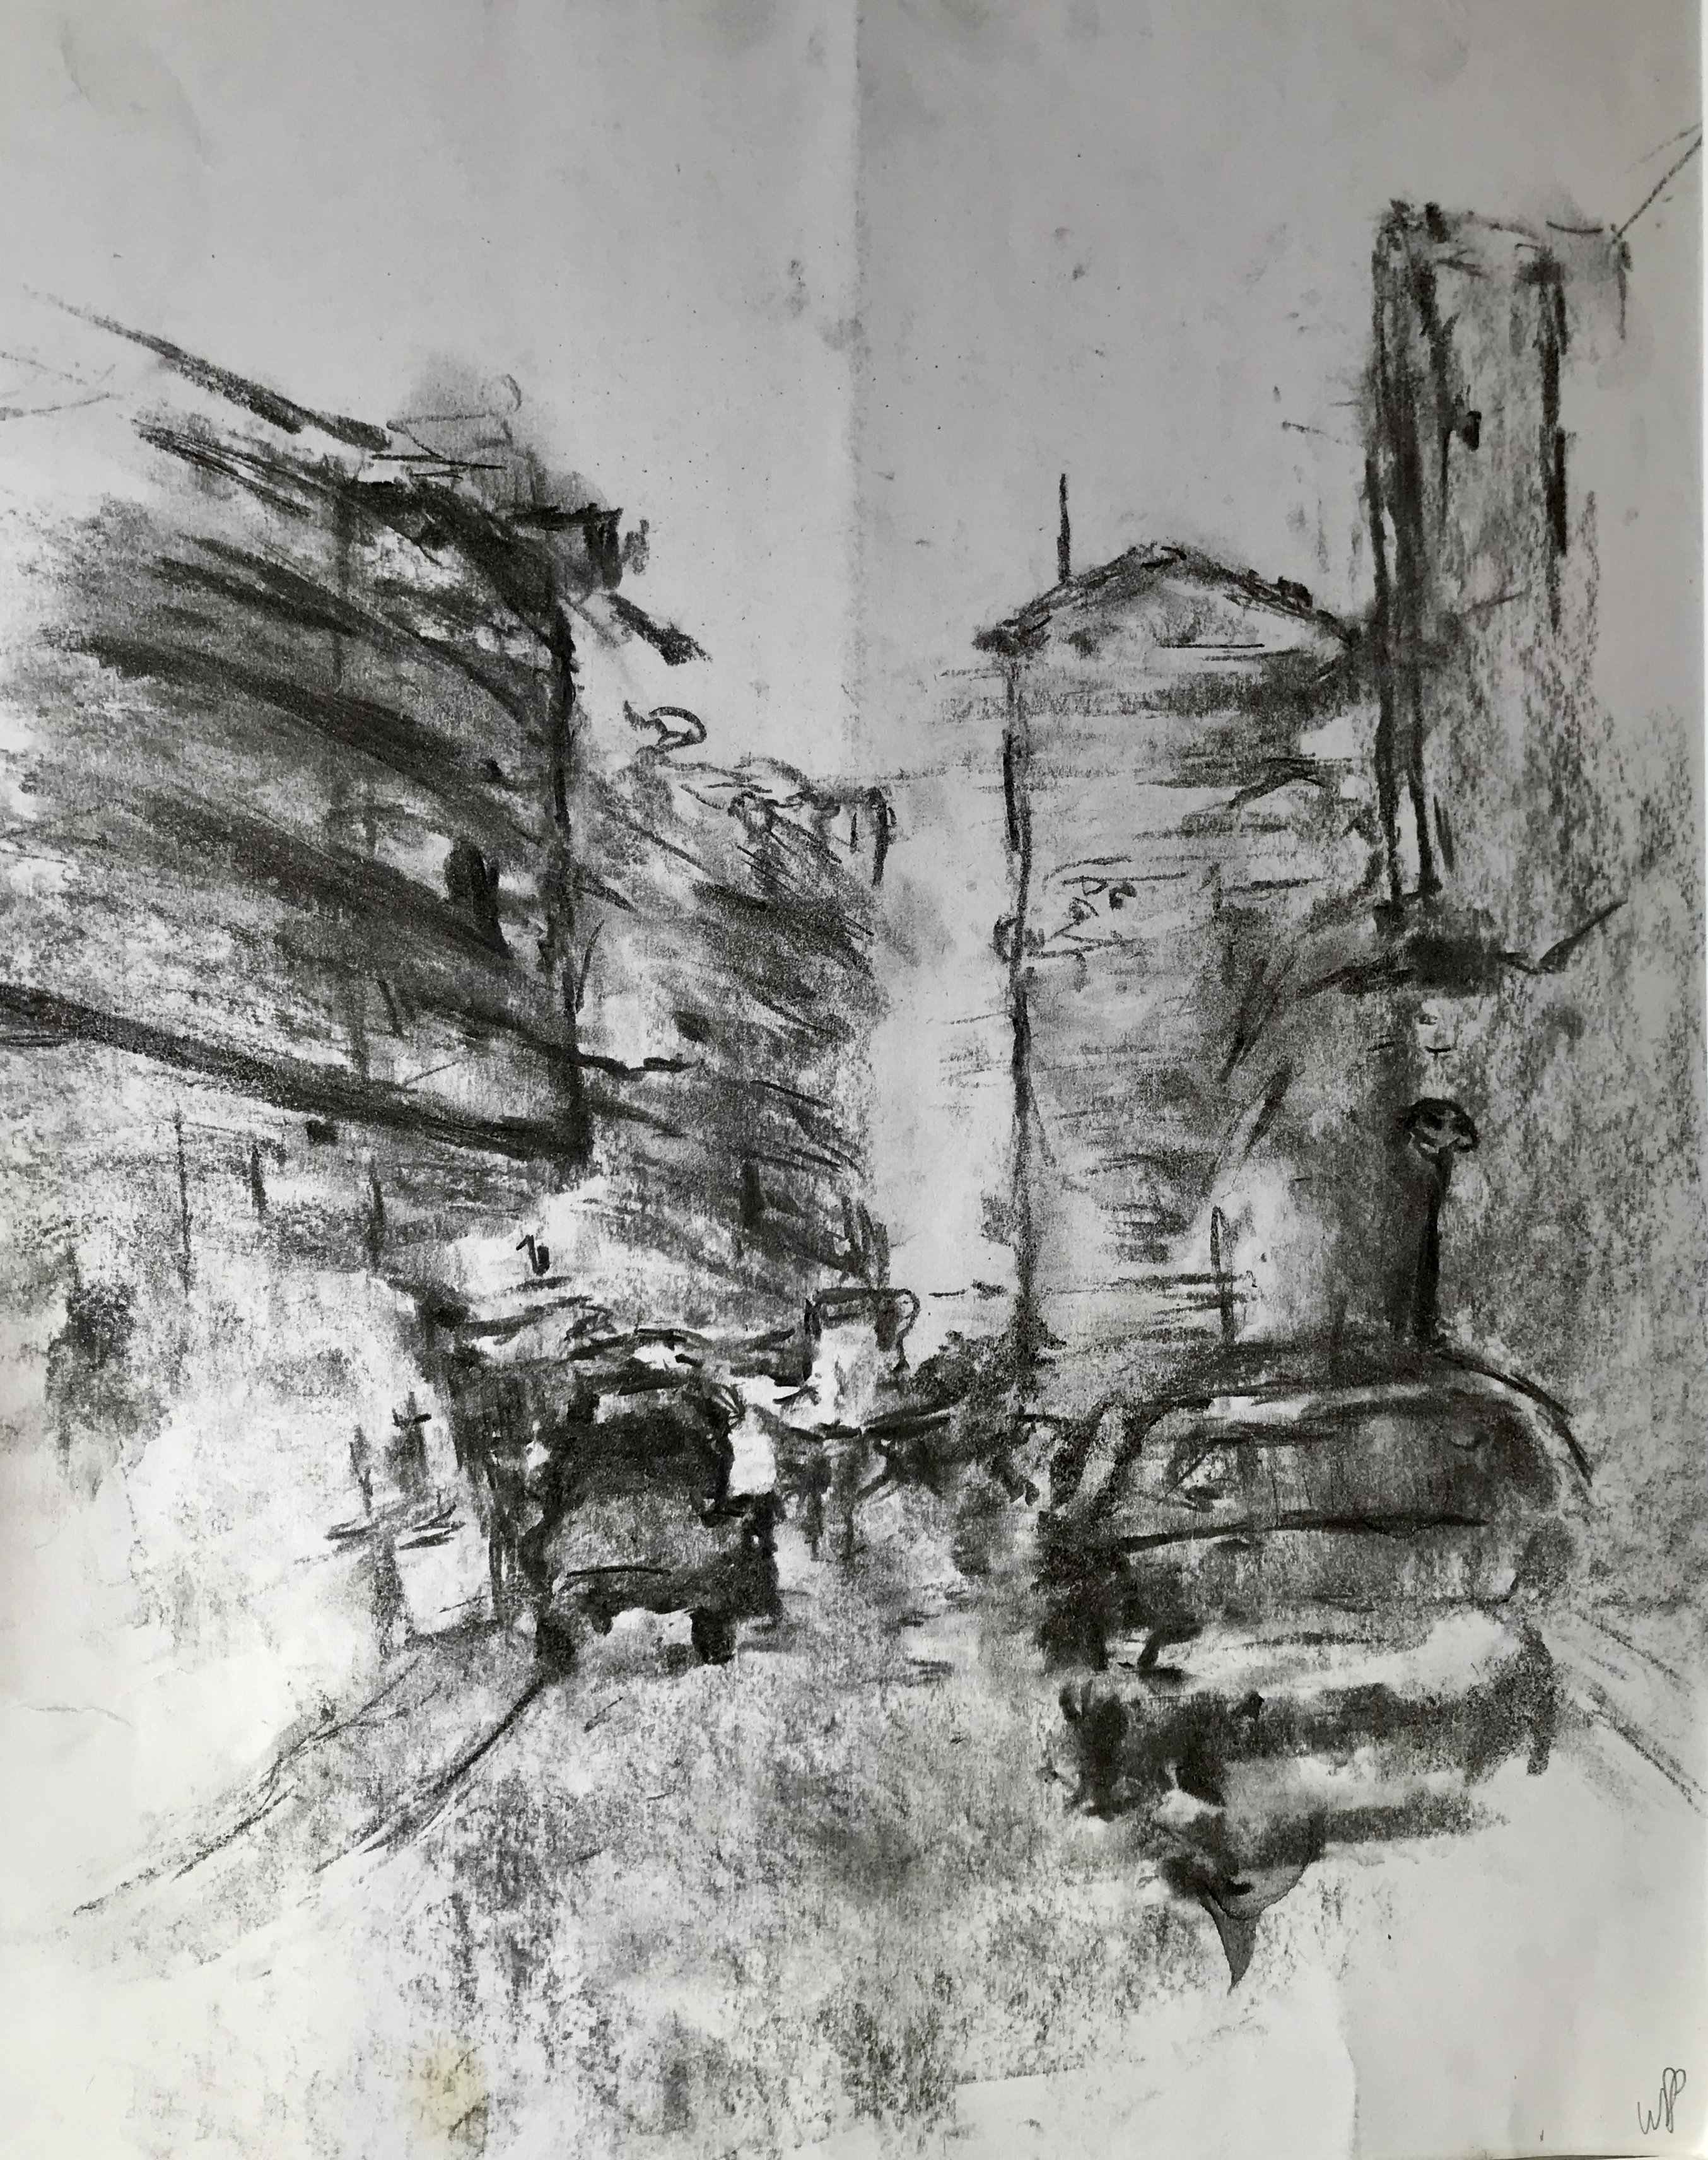 Traffic in Larnaca, charcoal on paper, 33x50 cm